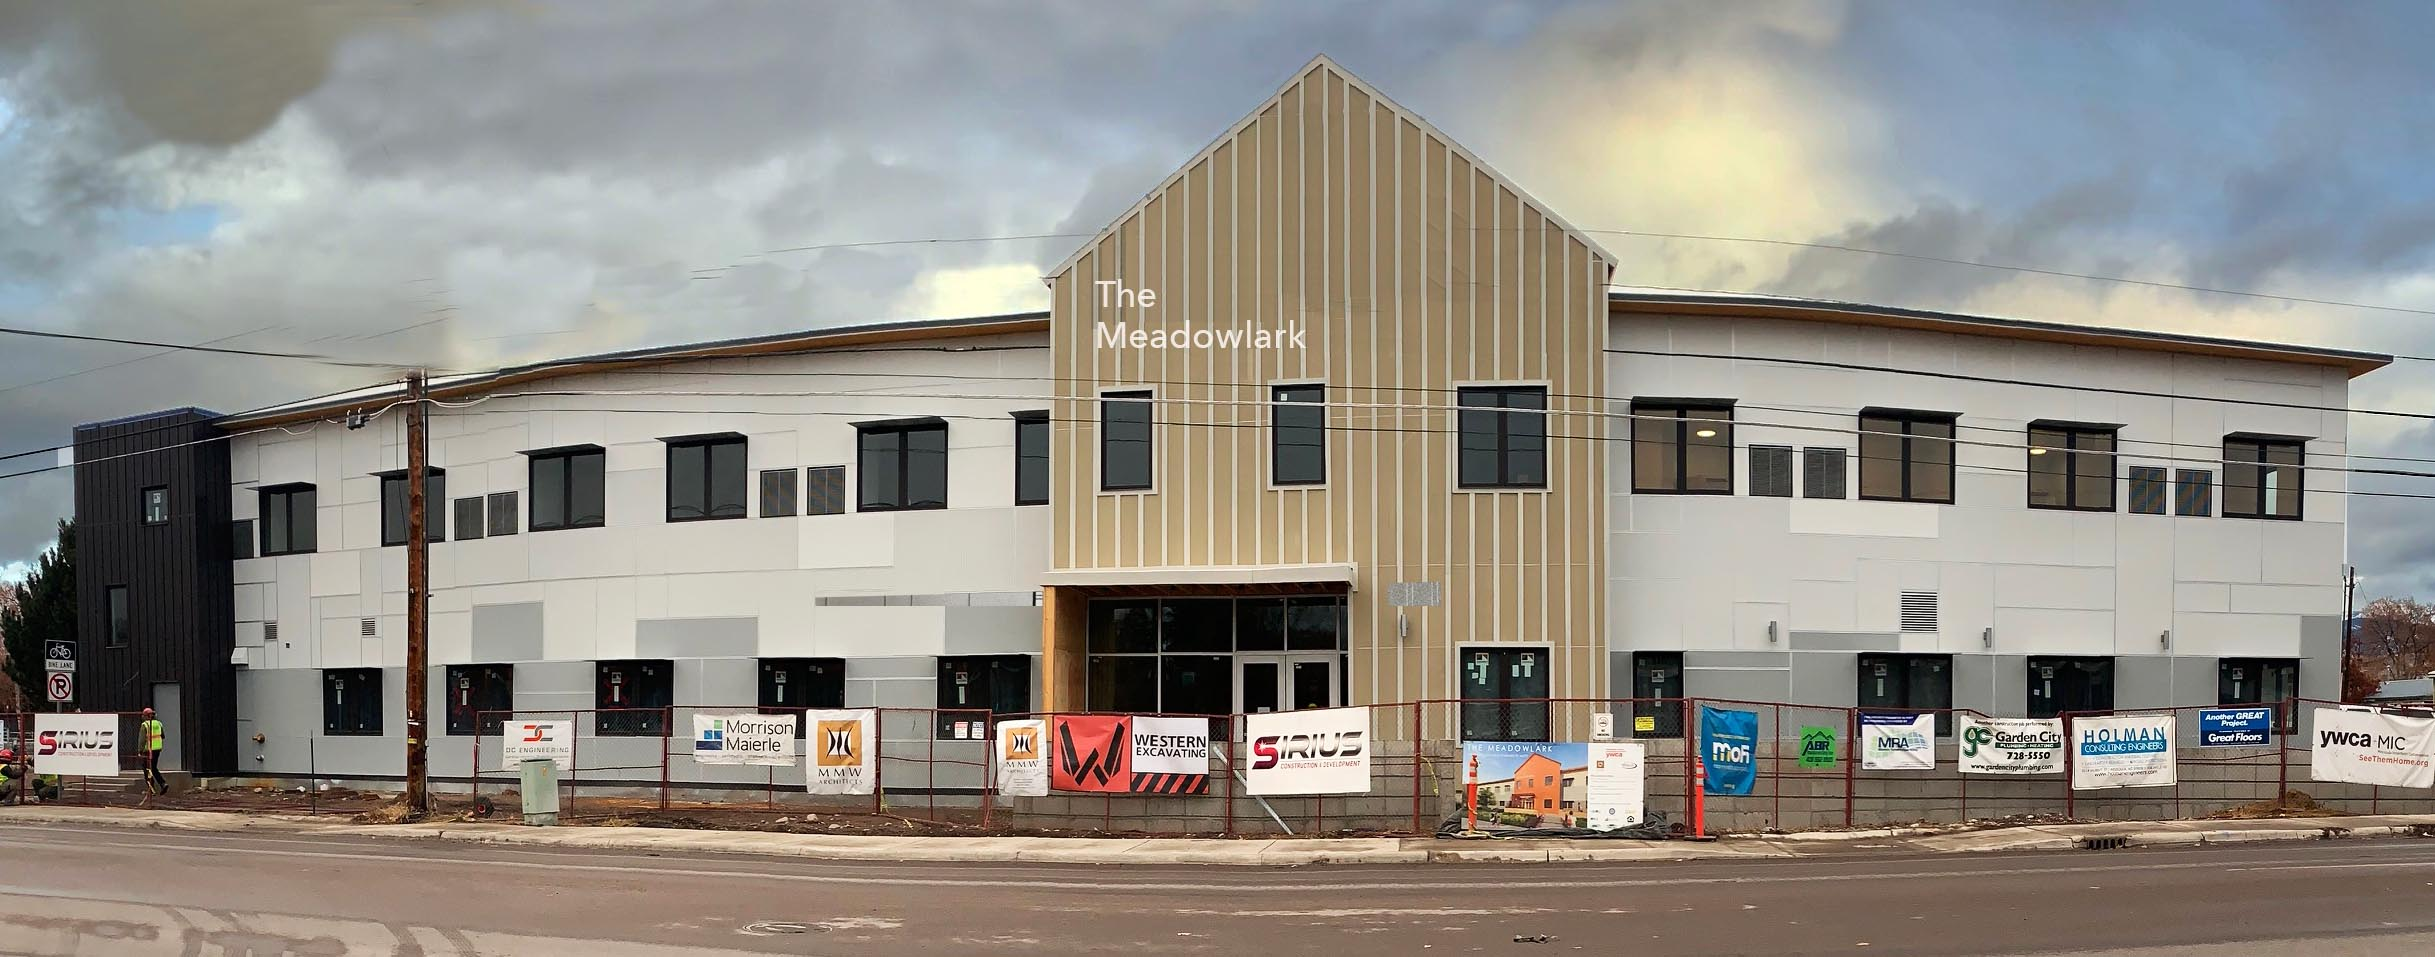 meadowlark-update